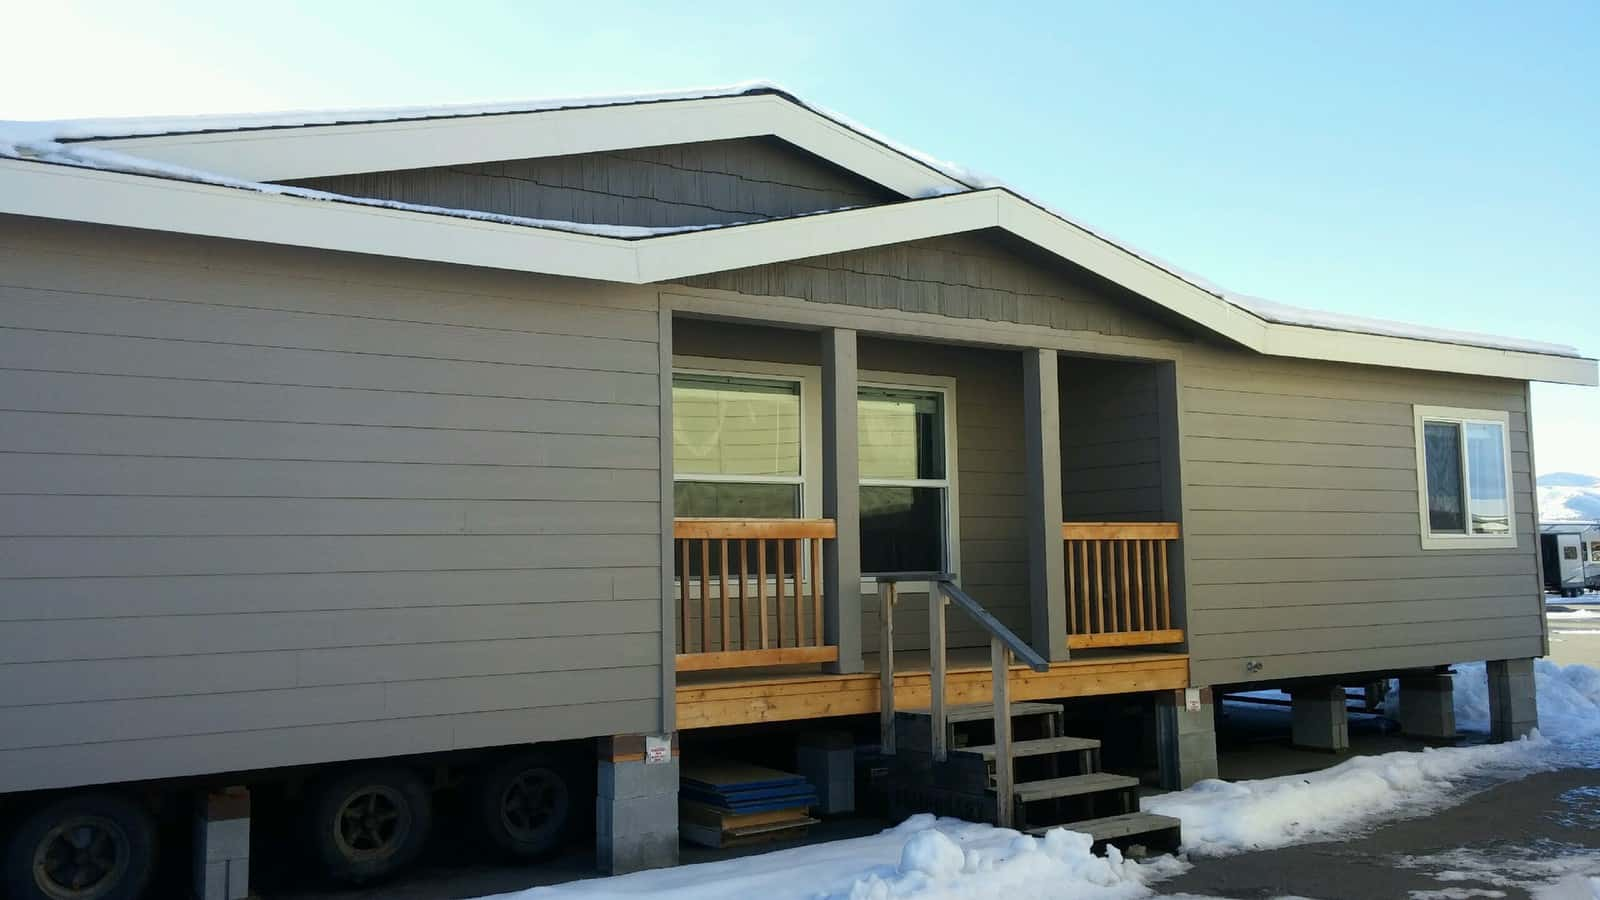 NEW Top of Line Marlette SAINT HELENS 2172 Sq.Ft. TRIPLE - Rangitsch Manufactured Home Center